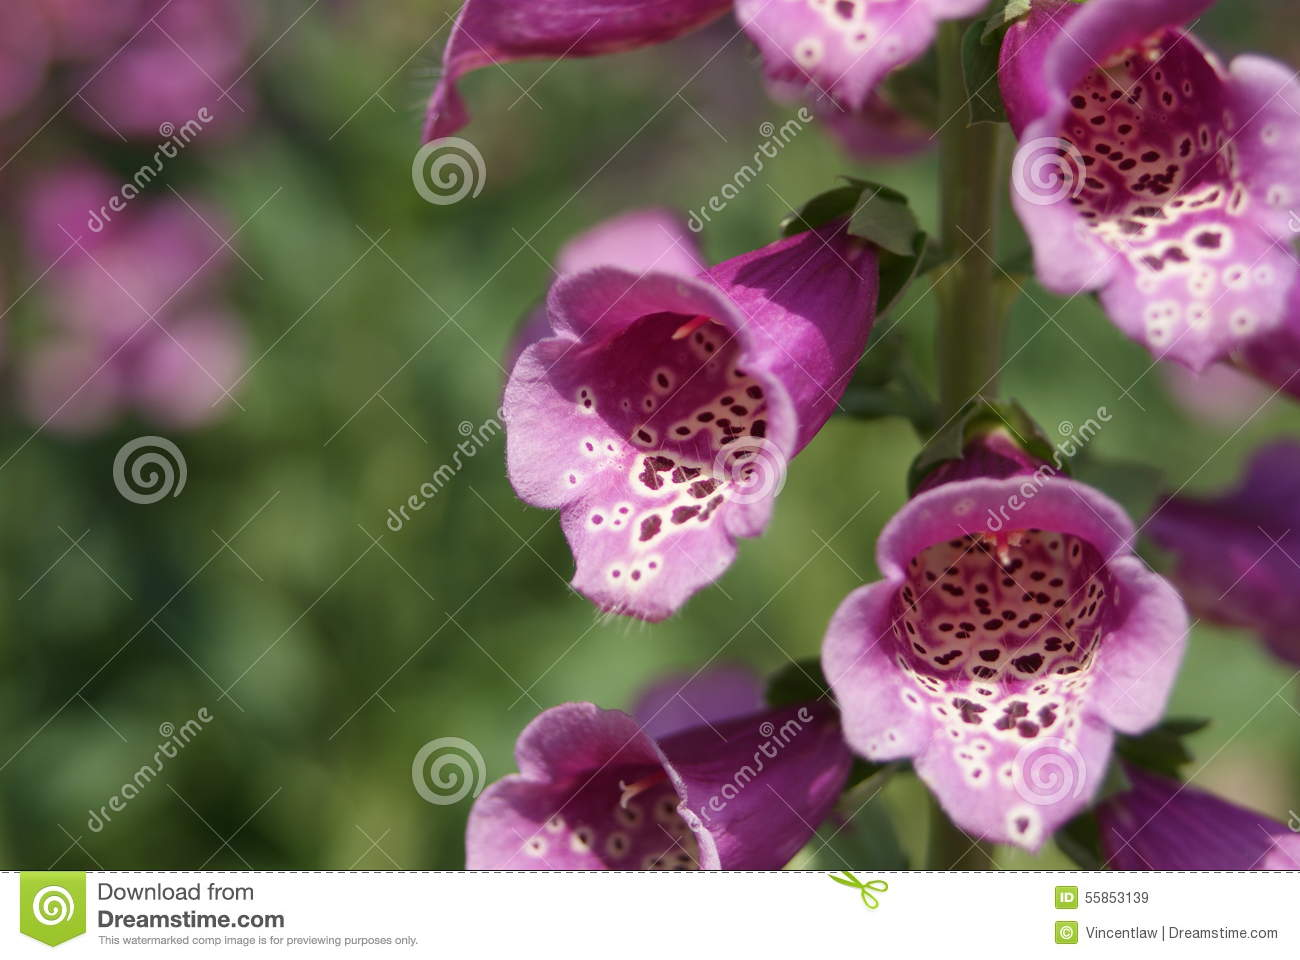 Pink bell flowers stock image image of spotted grenen 55853139 pink bell flowers mightylinksfo